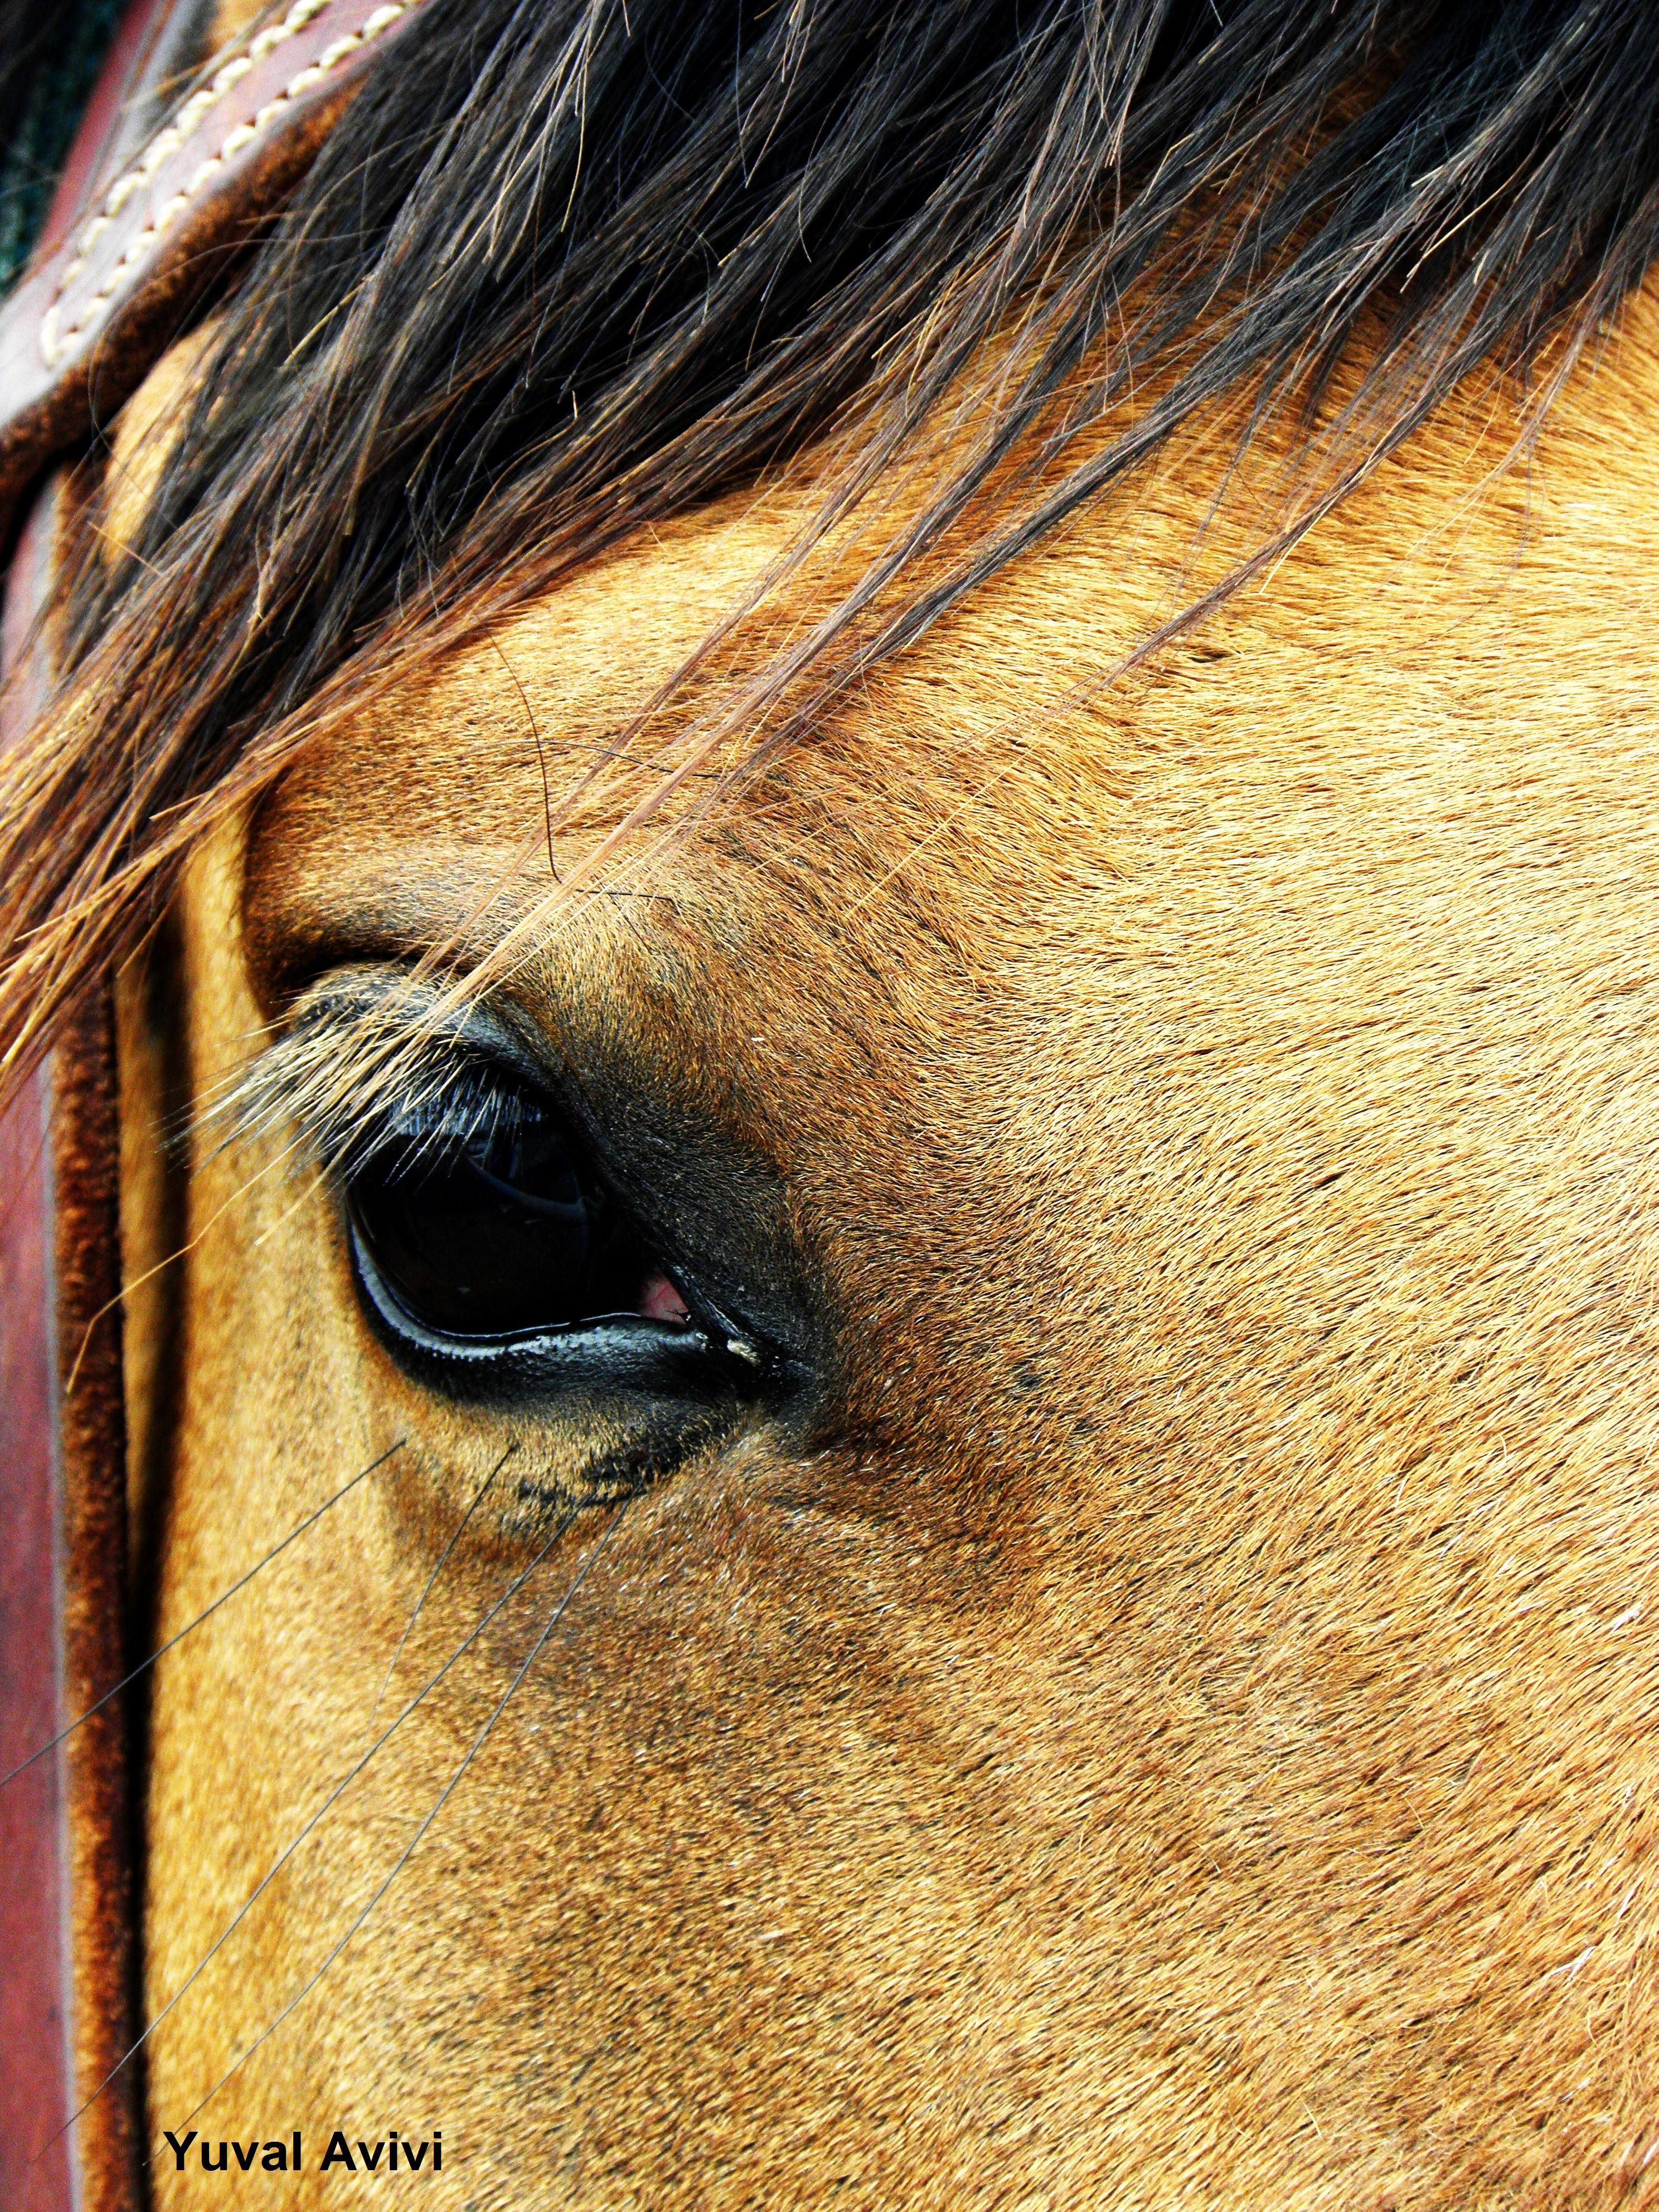 #Horse...eyes into our soul Eye of the Horses #HorseHealth #HorseColic www.loveyour.horse